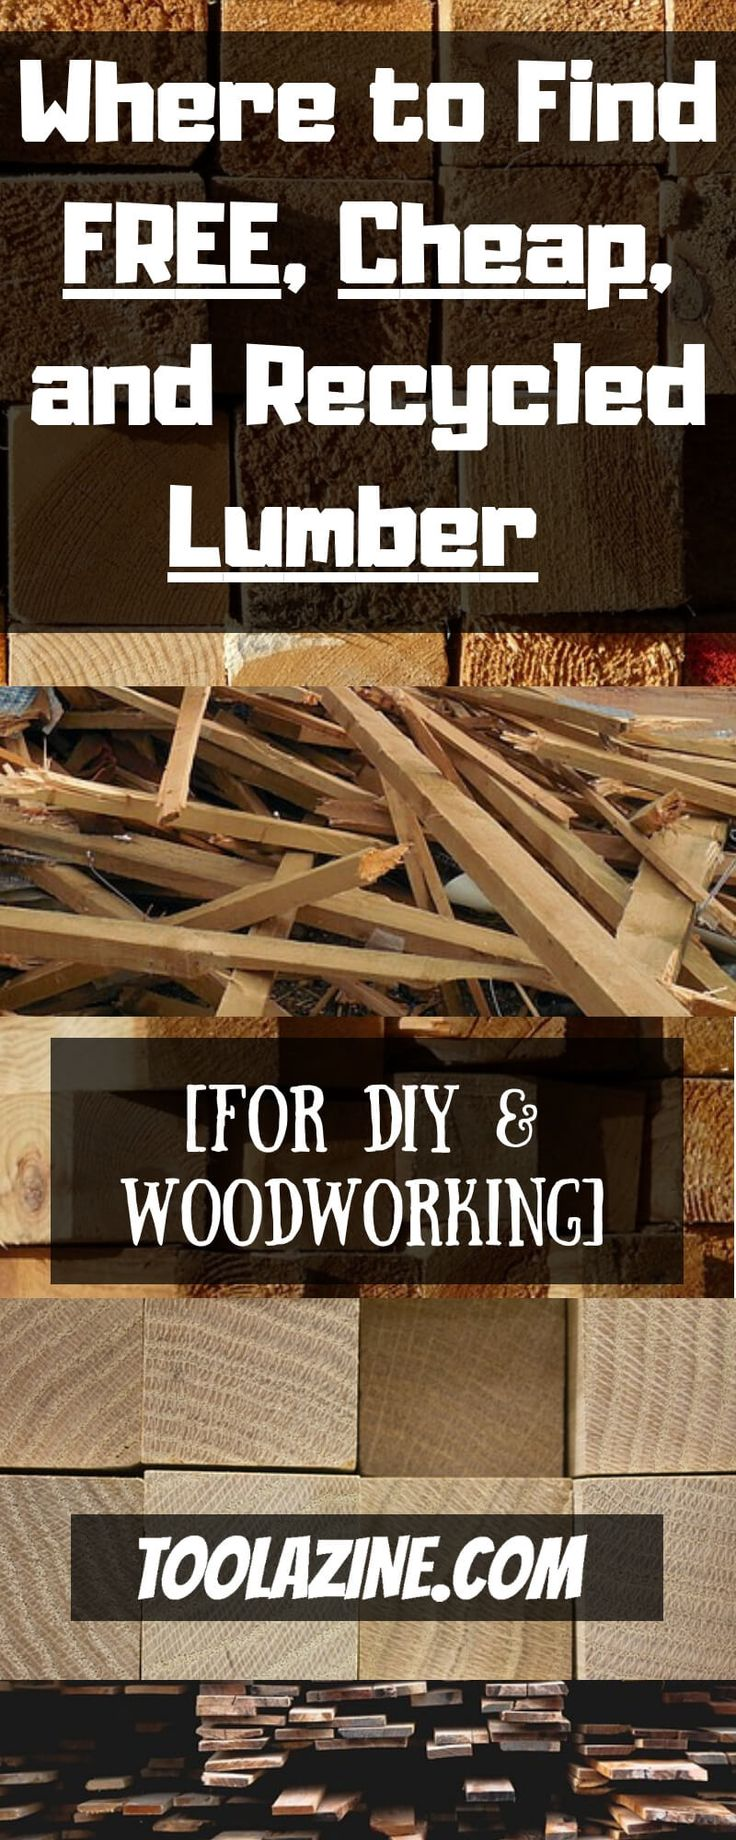 DIY Woodworking Ideas Where to Find Free, Cheap, and Recycled Lumber for DIY & Woodworking. Repurposed...